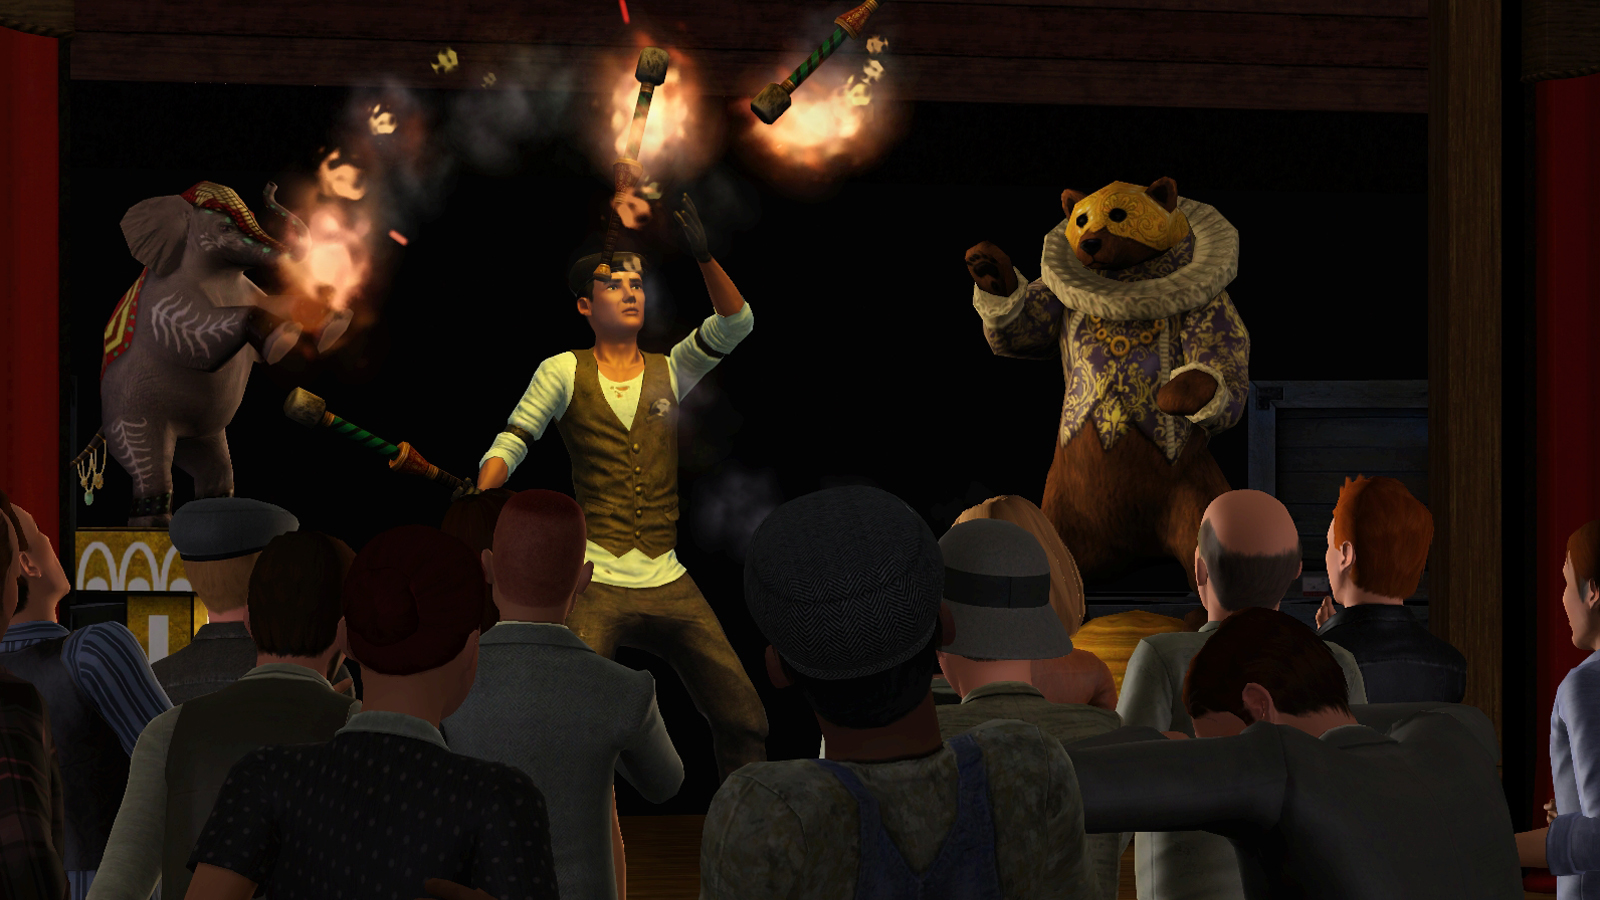 It's Showtime for the Sims! New acrobatic screenshots